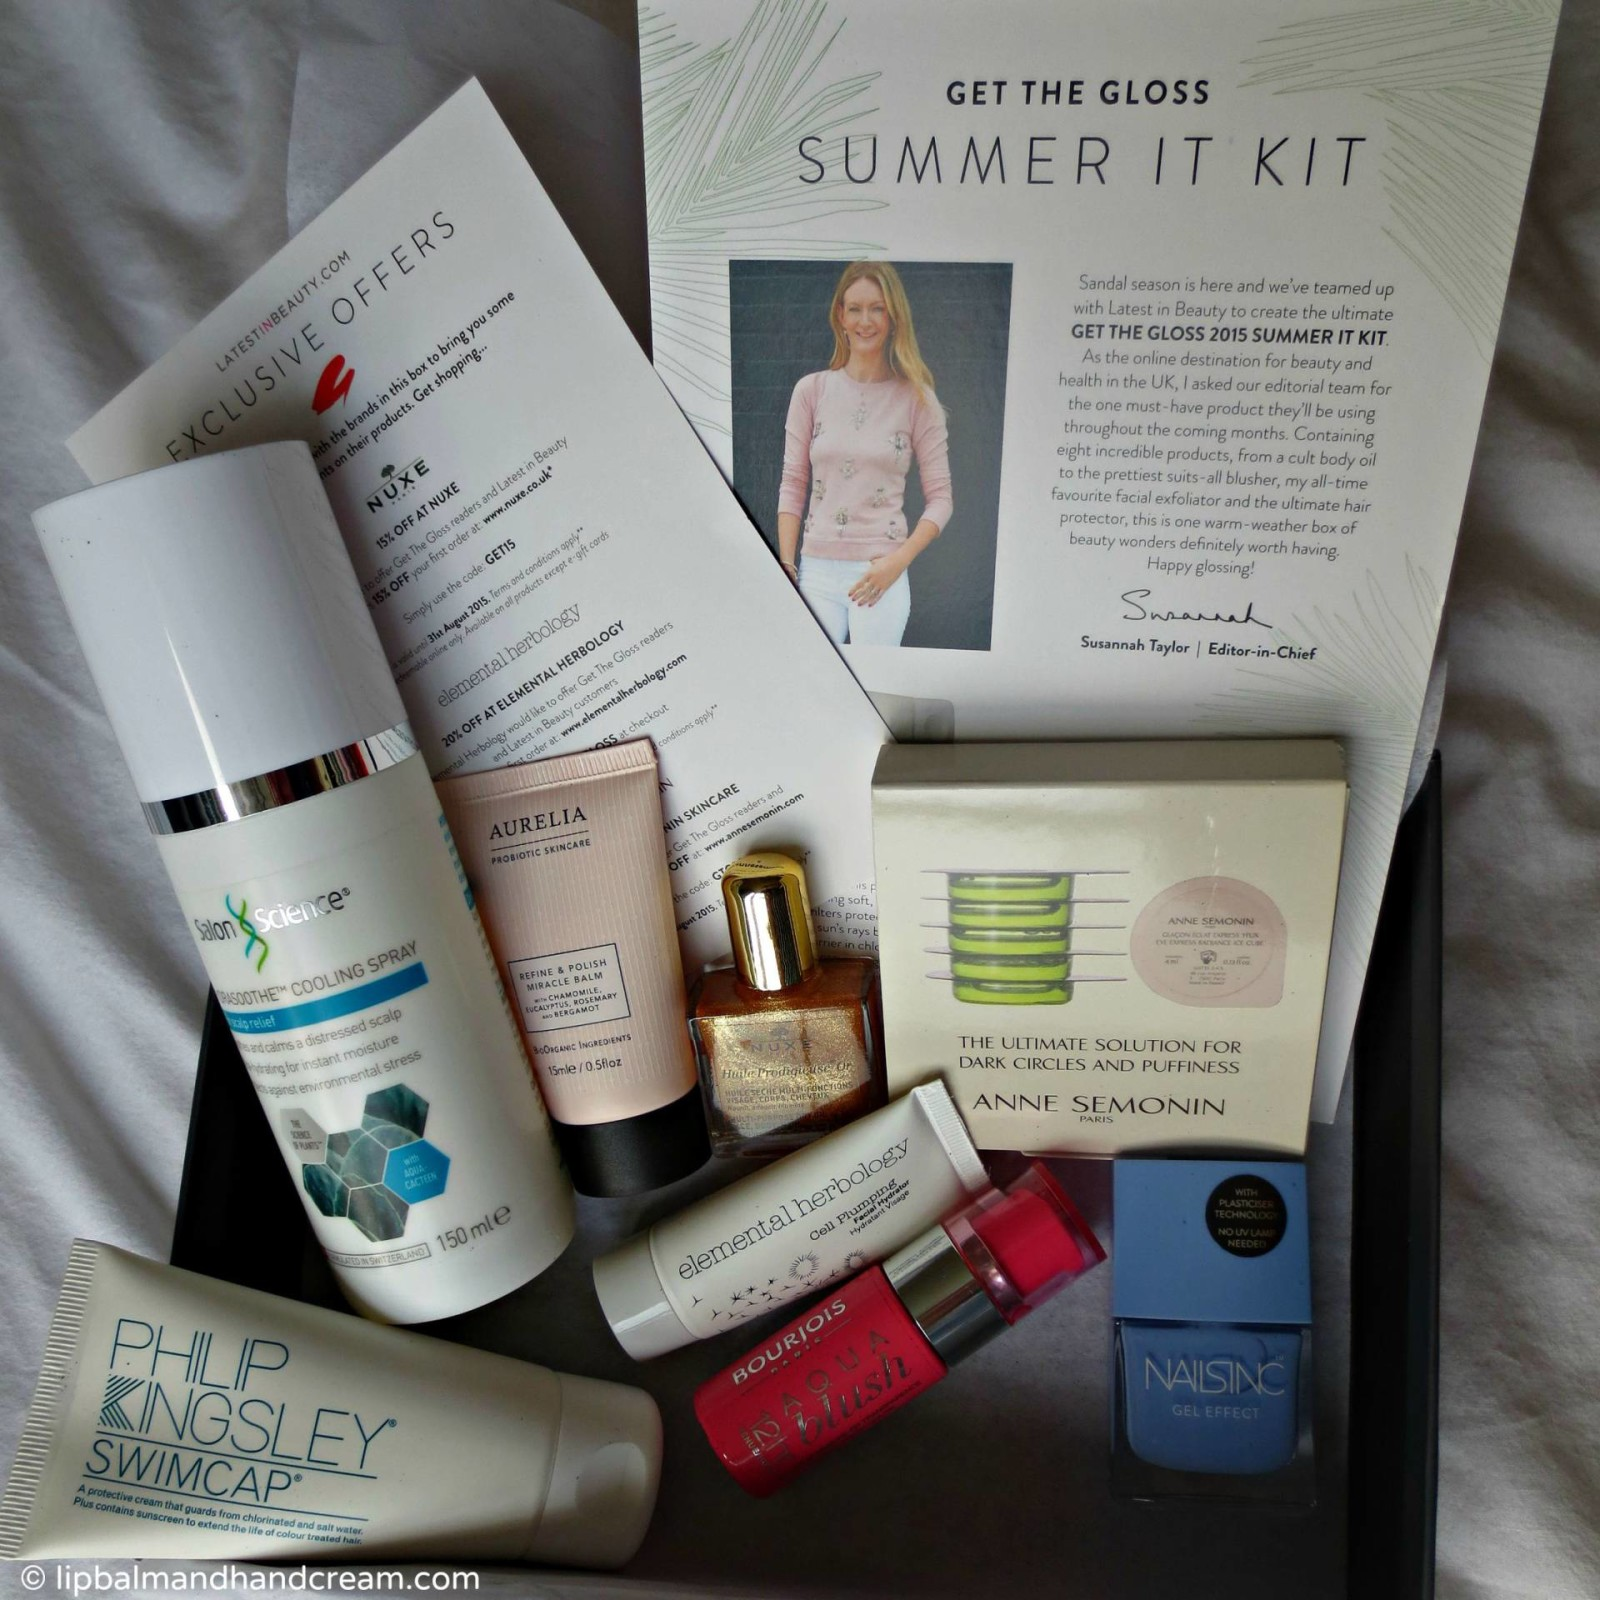 Get the gloss's summer kit beauty box from Latest in Beauty